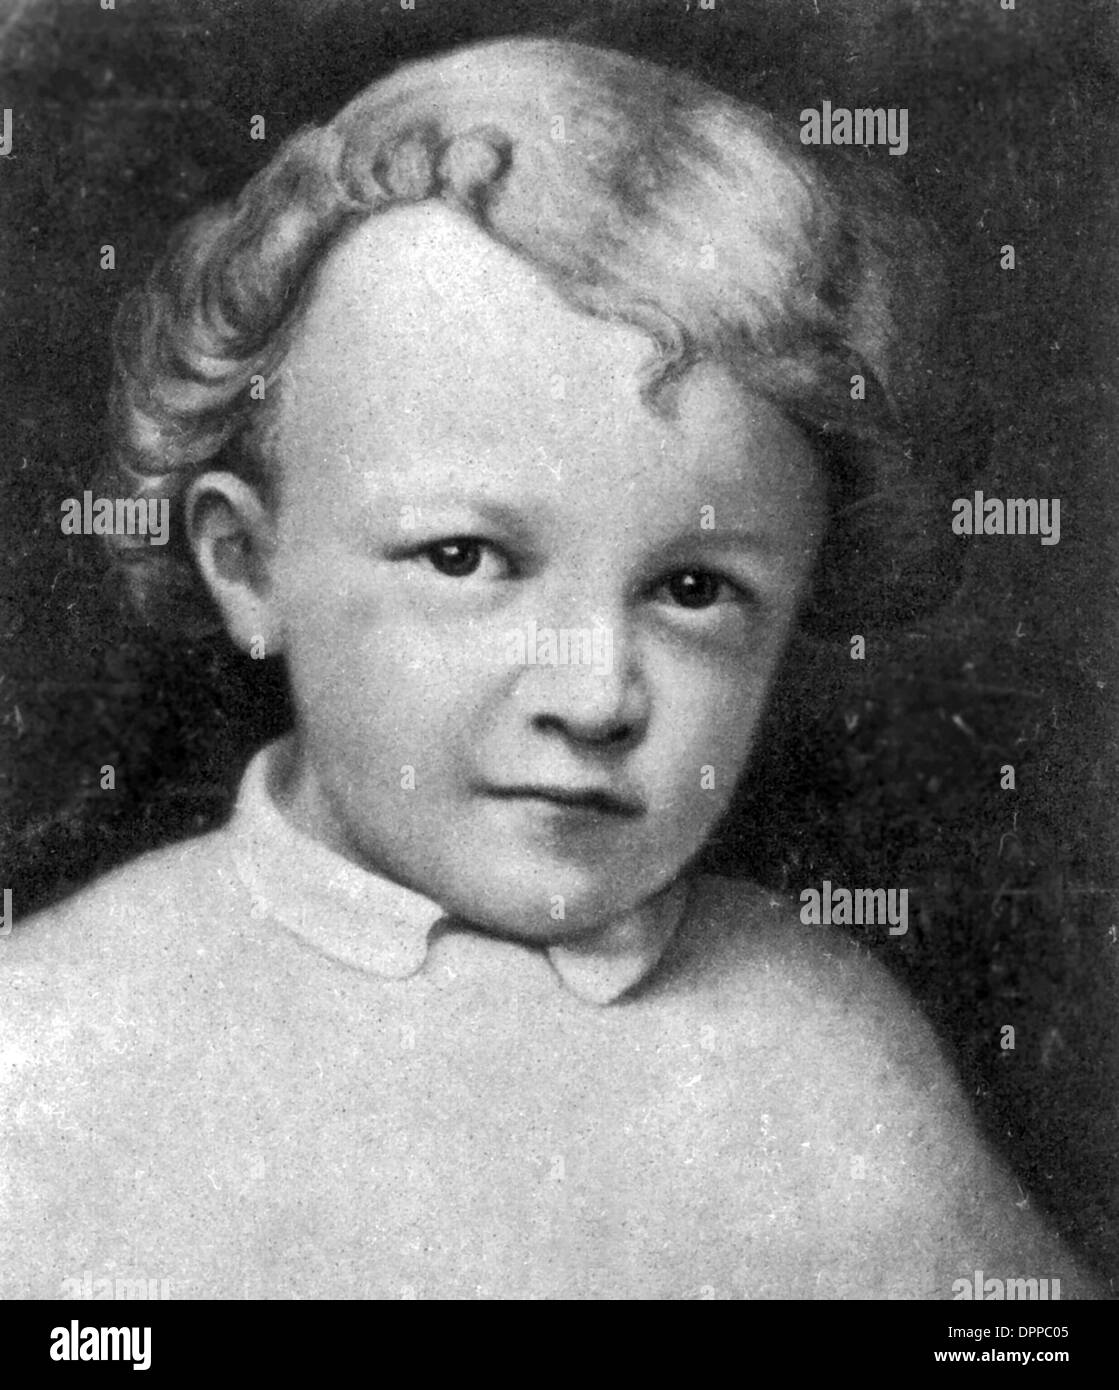 Vladimir Ilyich Lenin aged 4, Russian communist revolutionary, politician and Premier of the Soviet Union - Stock Image